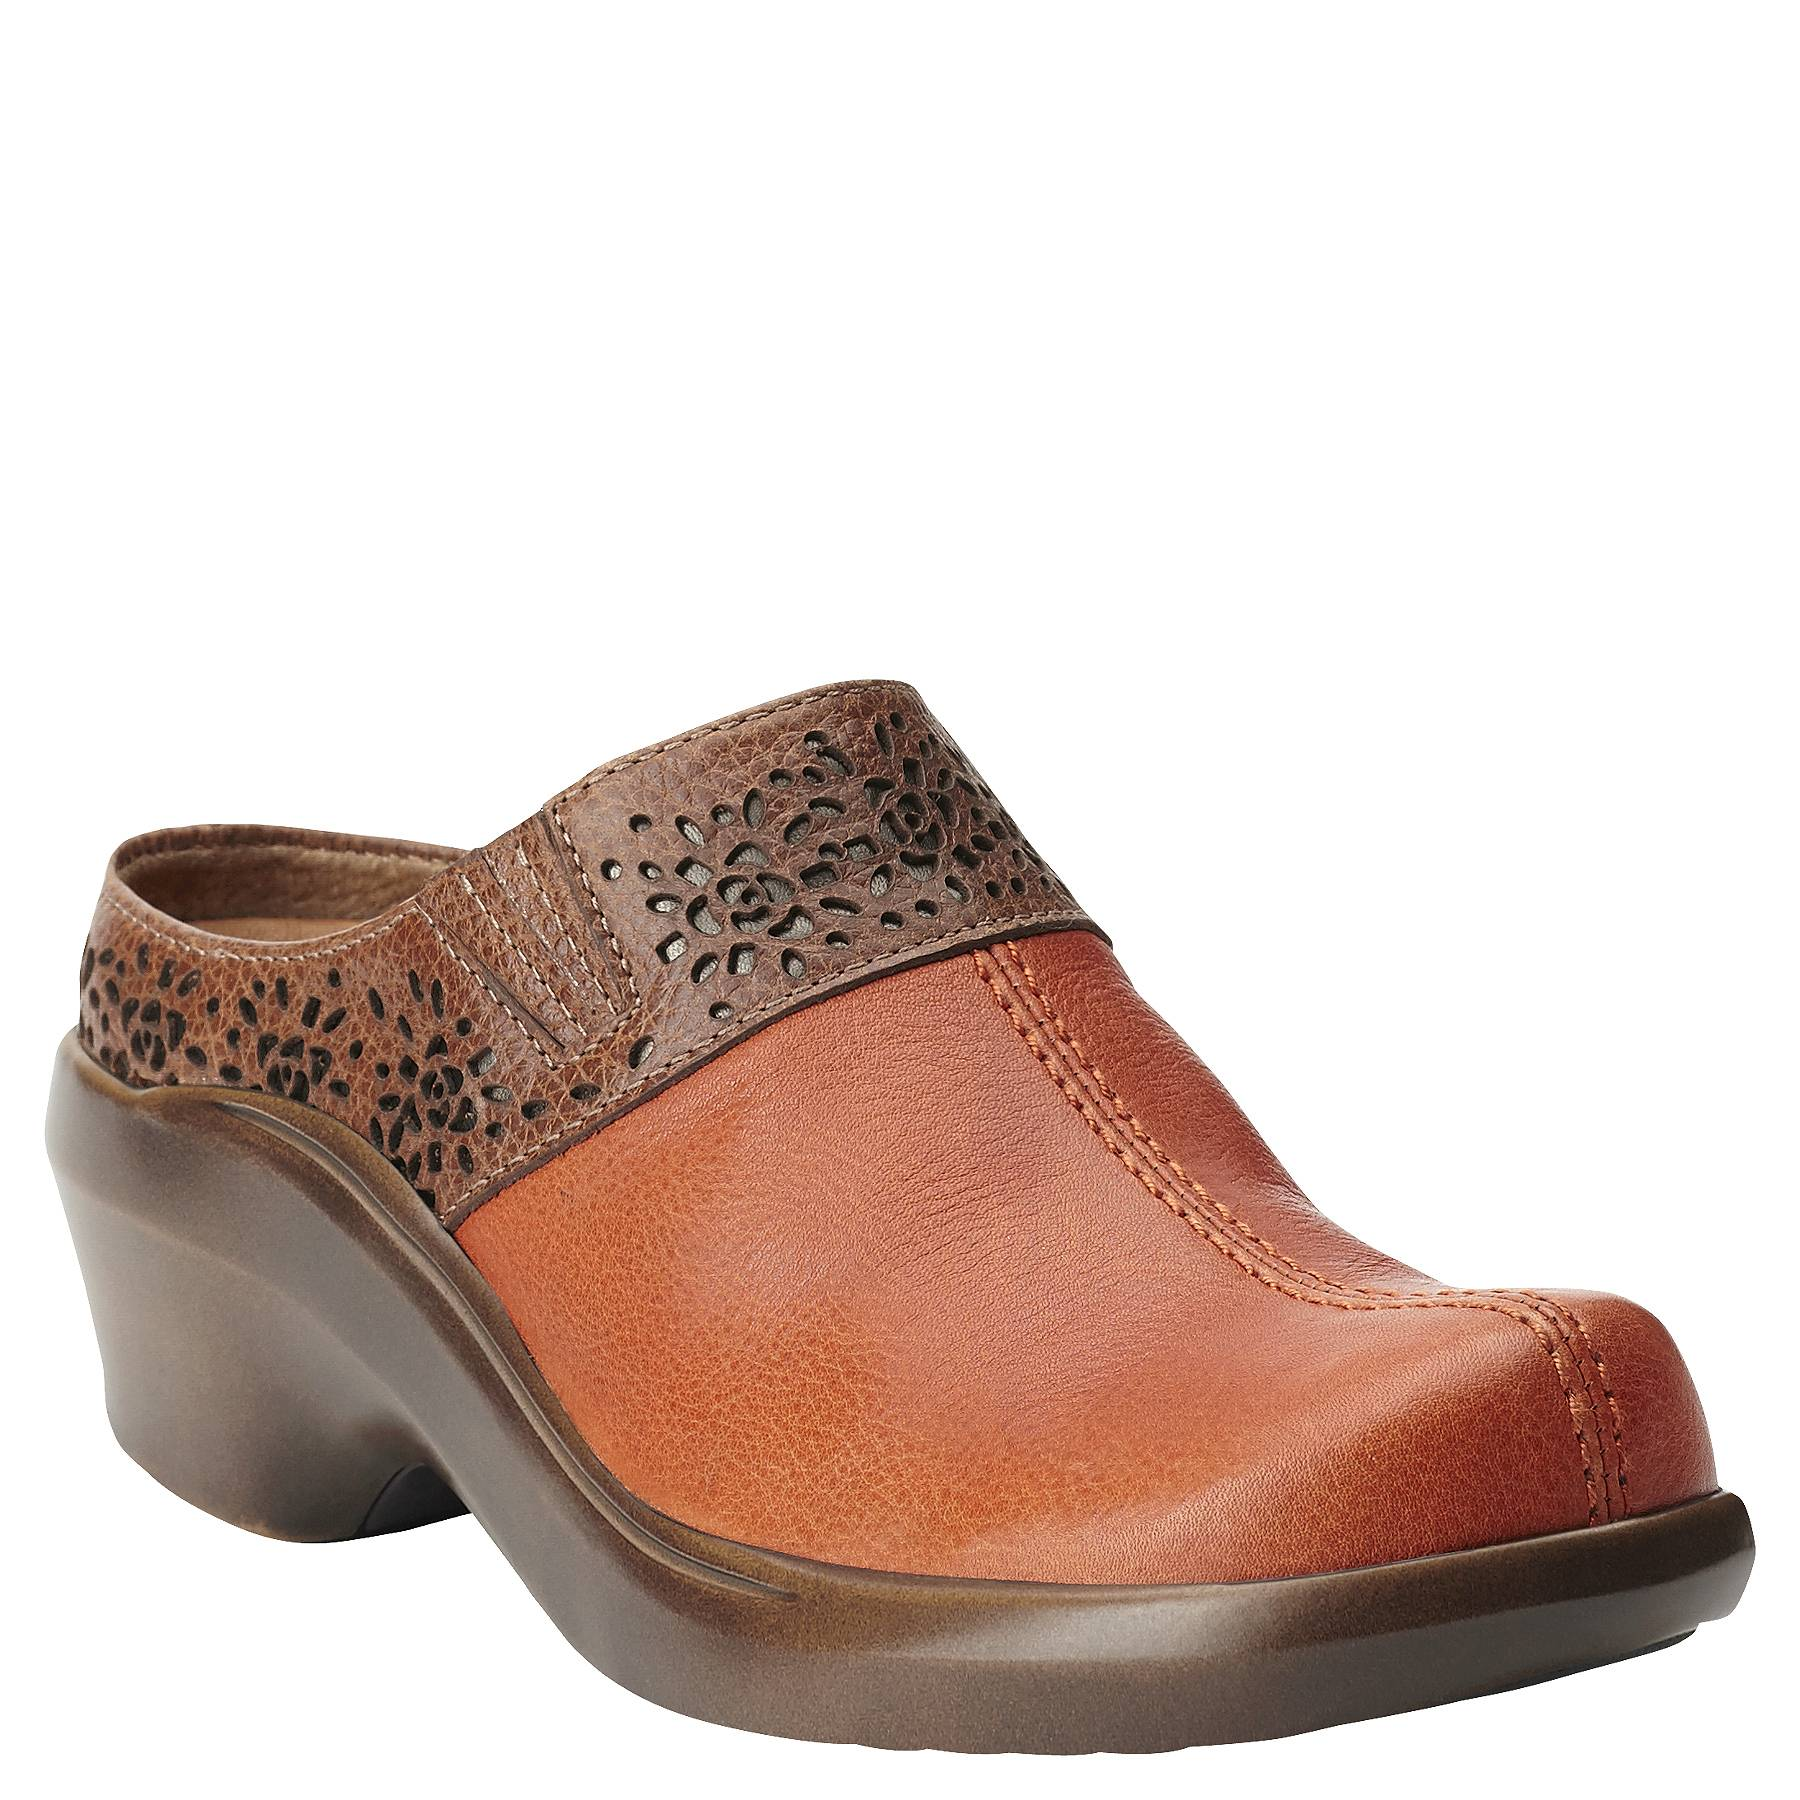 Ariat Women's Santa Cruz Mule